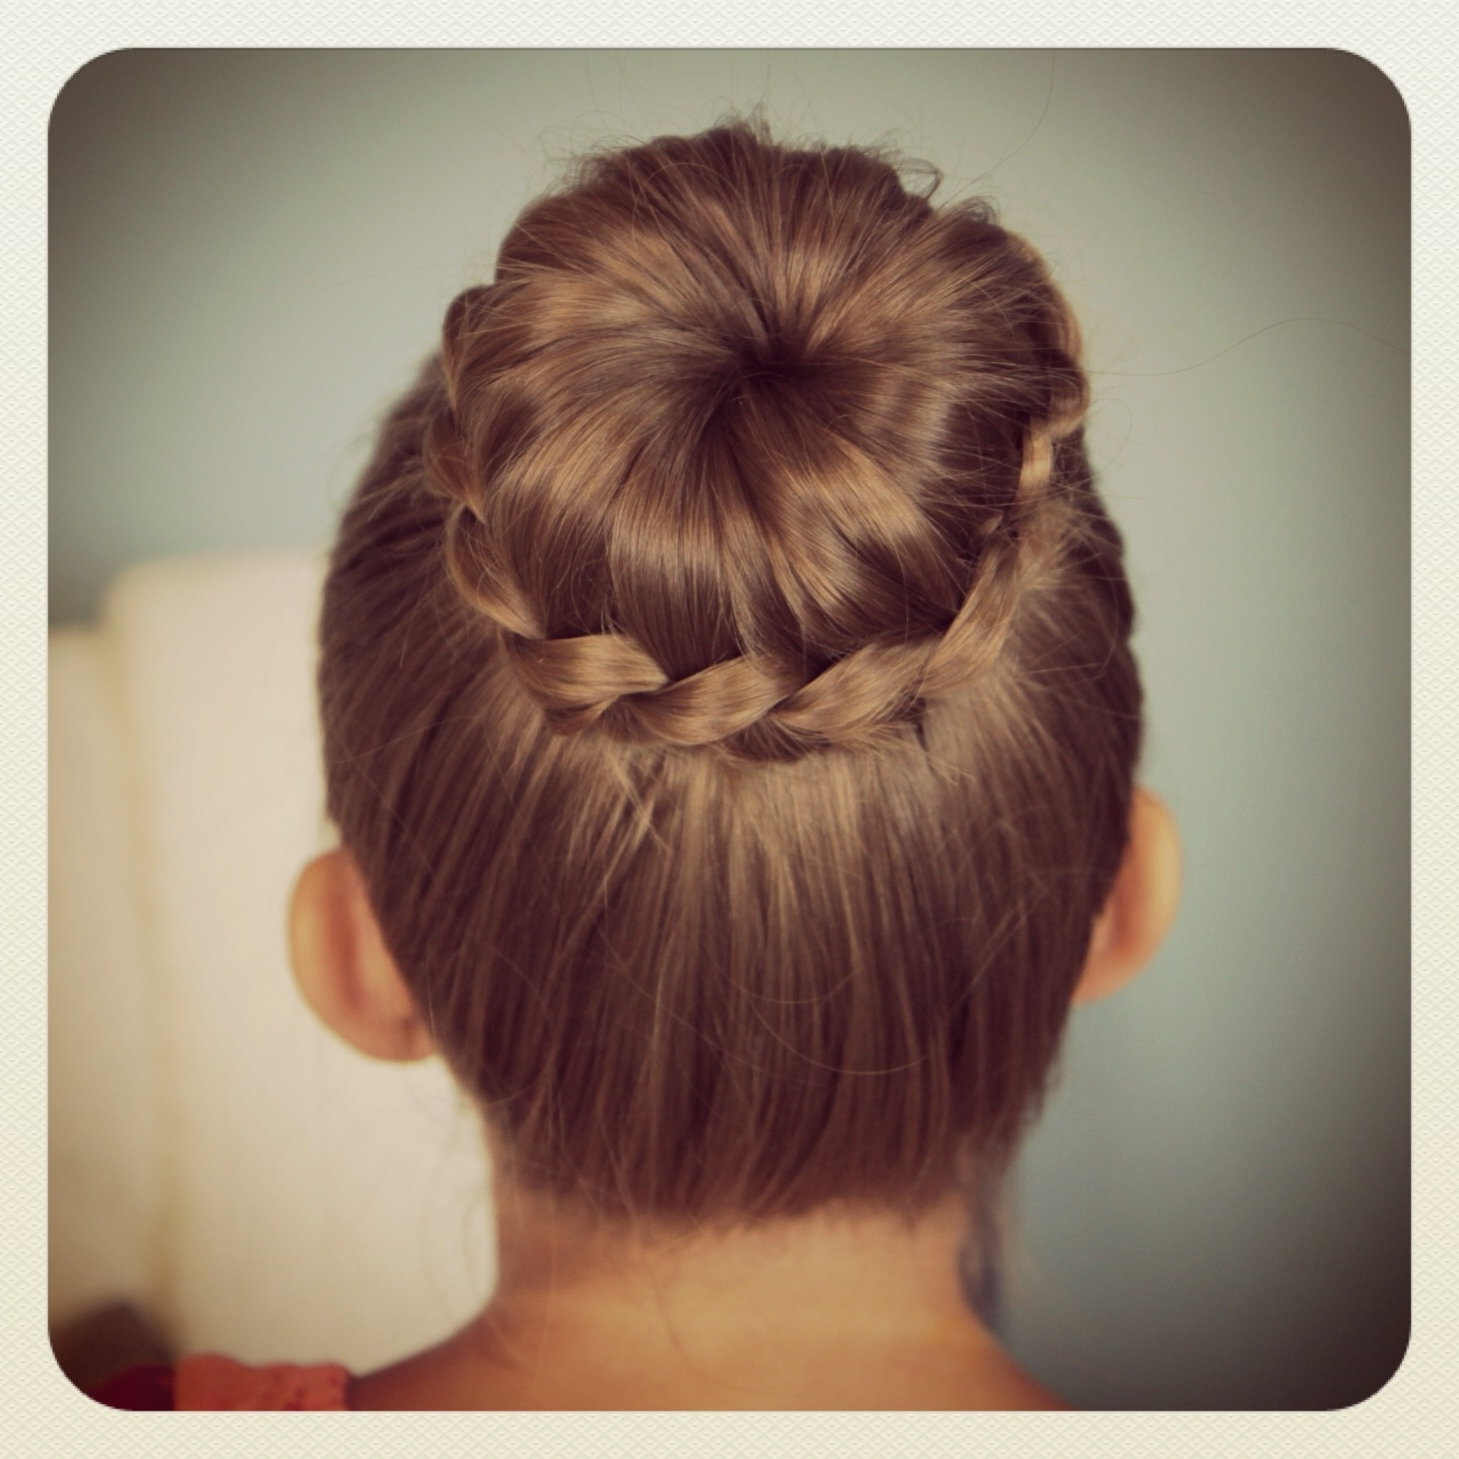 Cute Back To School Hair Cuts | Lace Braided Bun | Cute Updo Inside Updo Hairstyles For School (View 7 of 15)